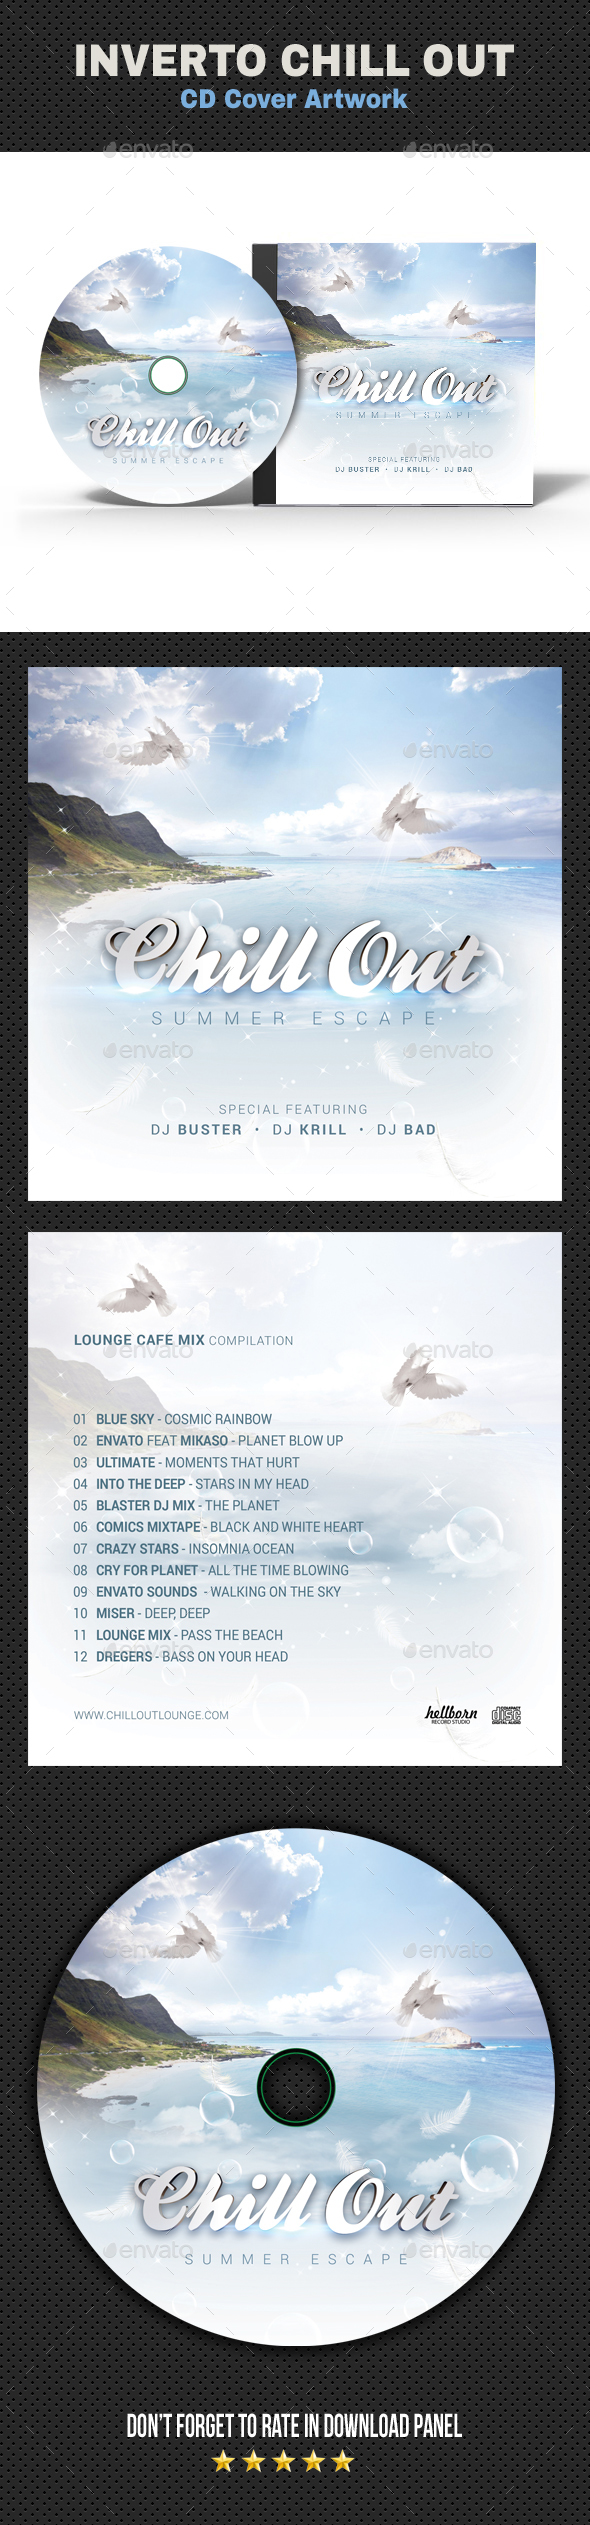 GraphicRiver Chill Out Lounge CD Cover V04 20385565